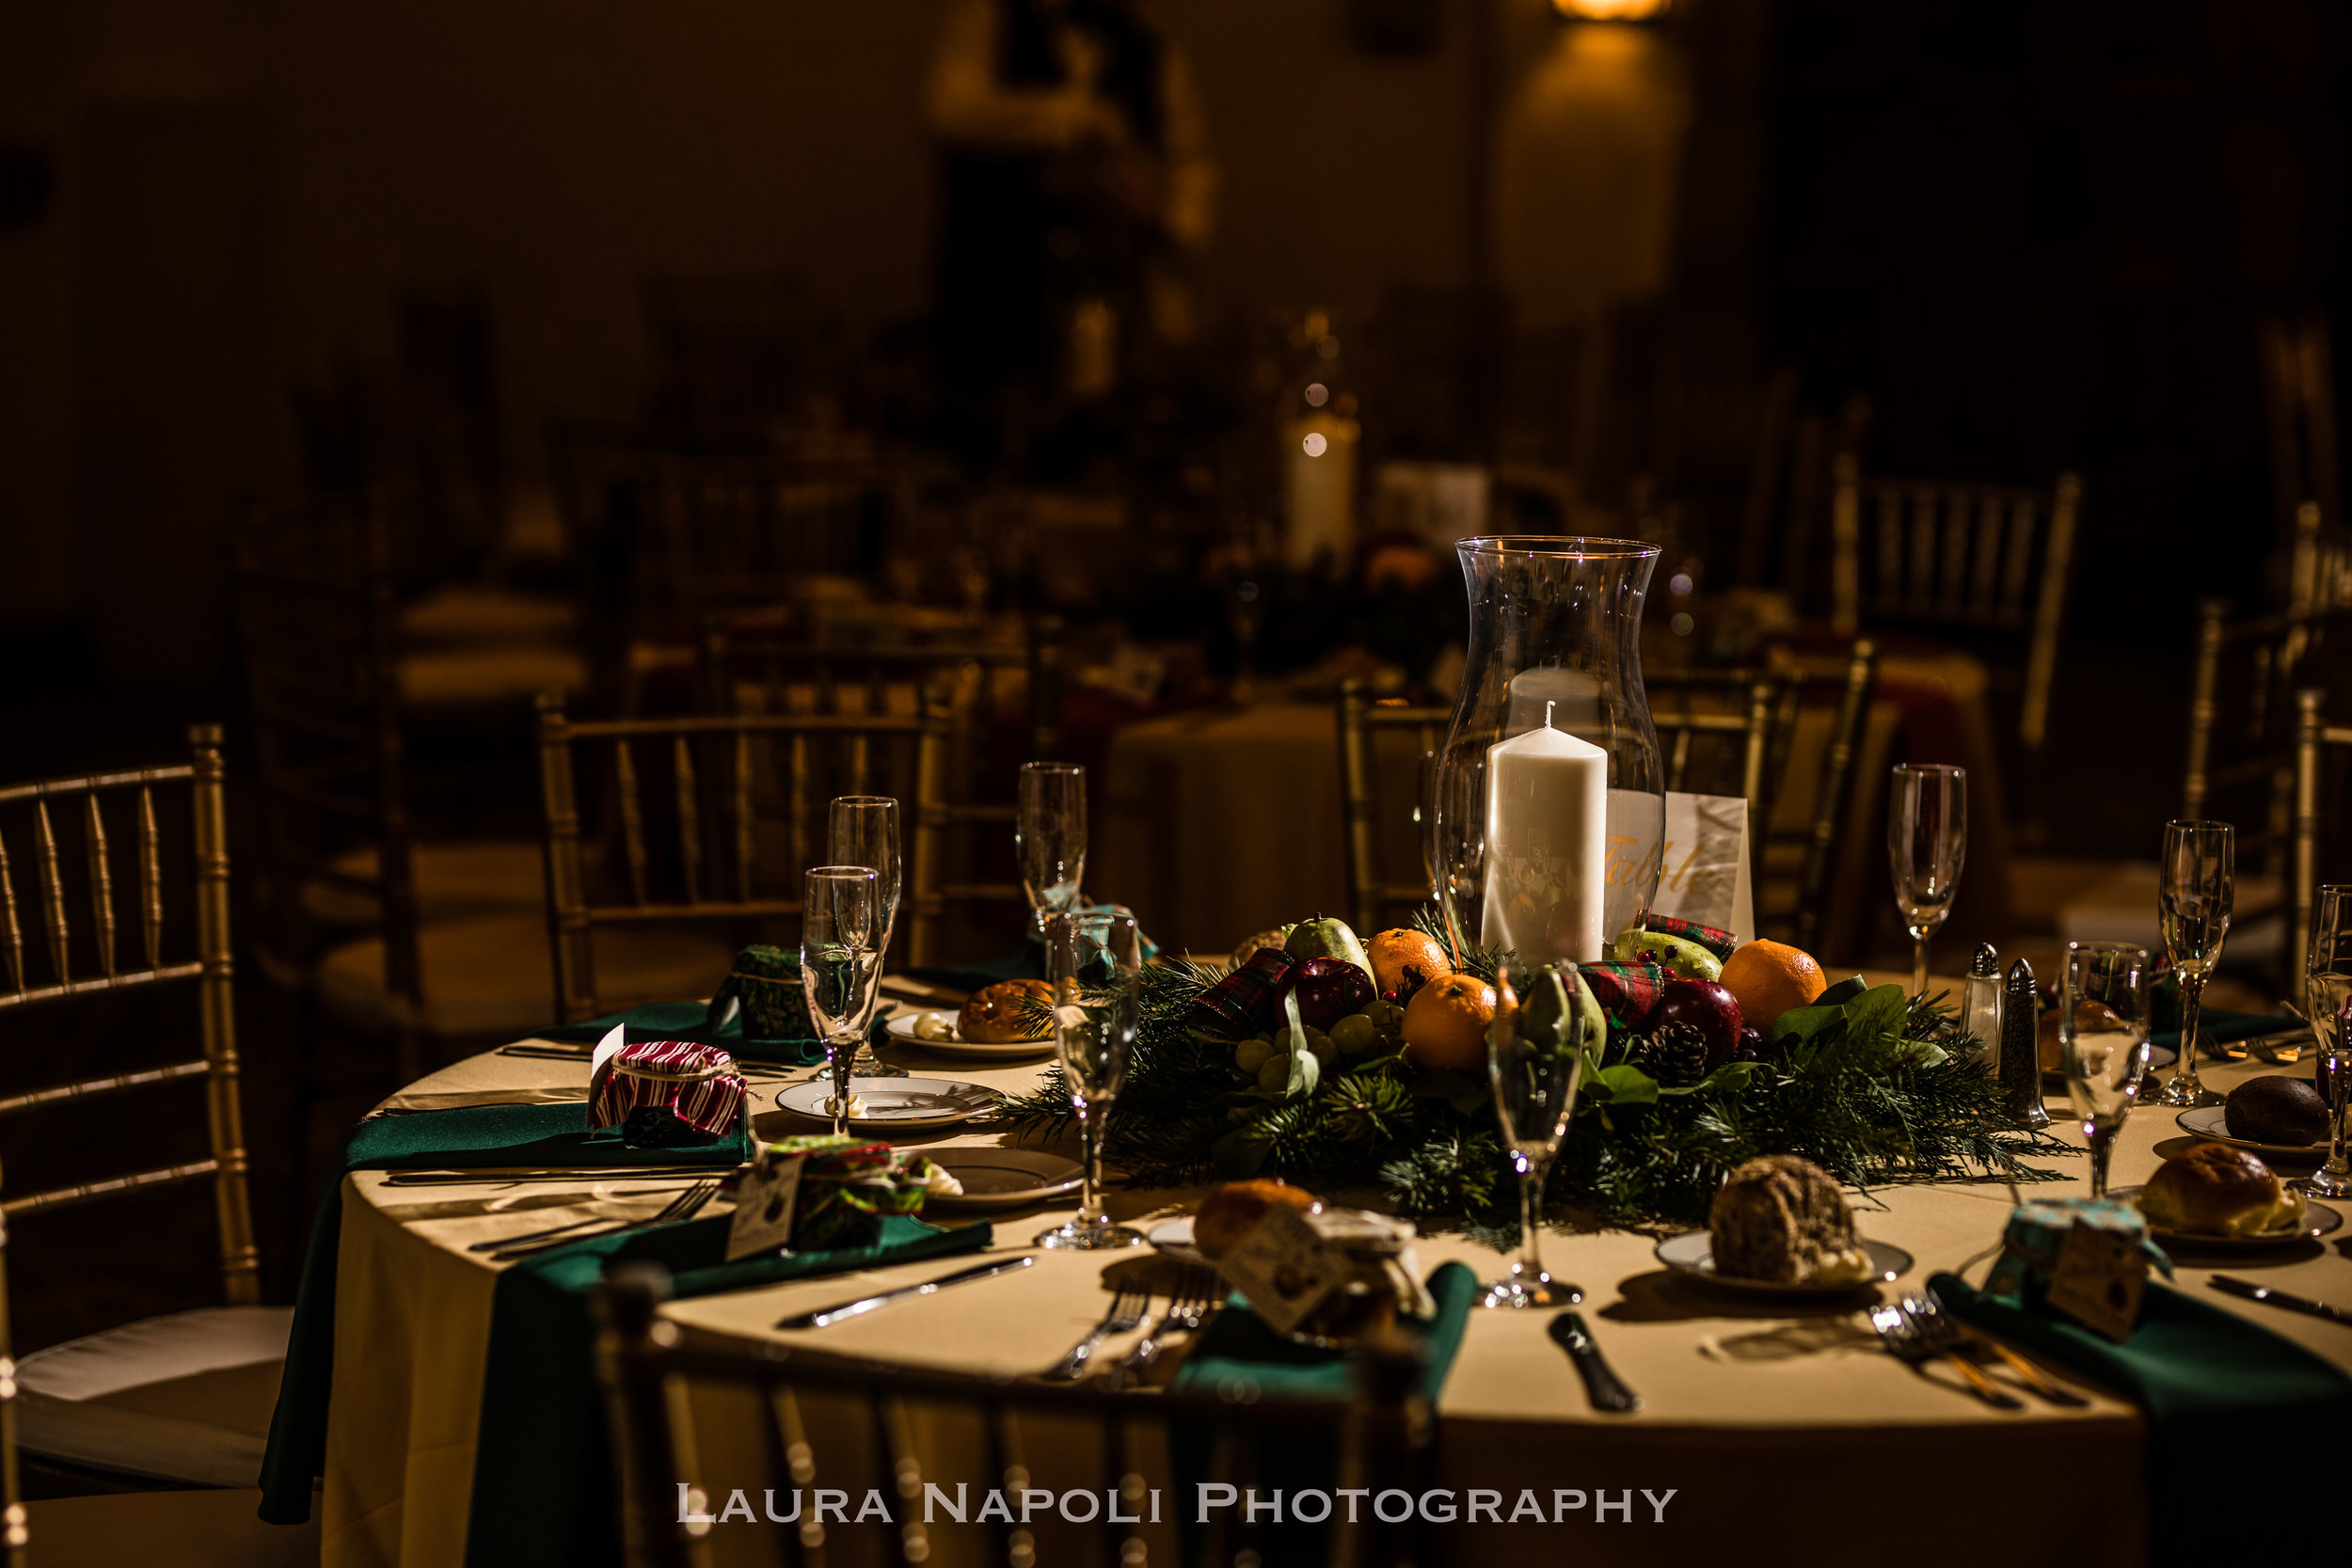 Meriontributehouseweddinginmerionstationpa-22.jpg